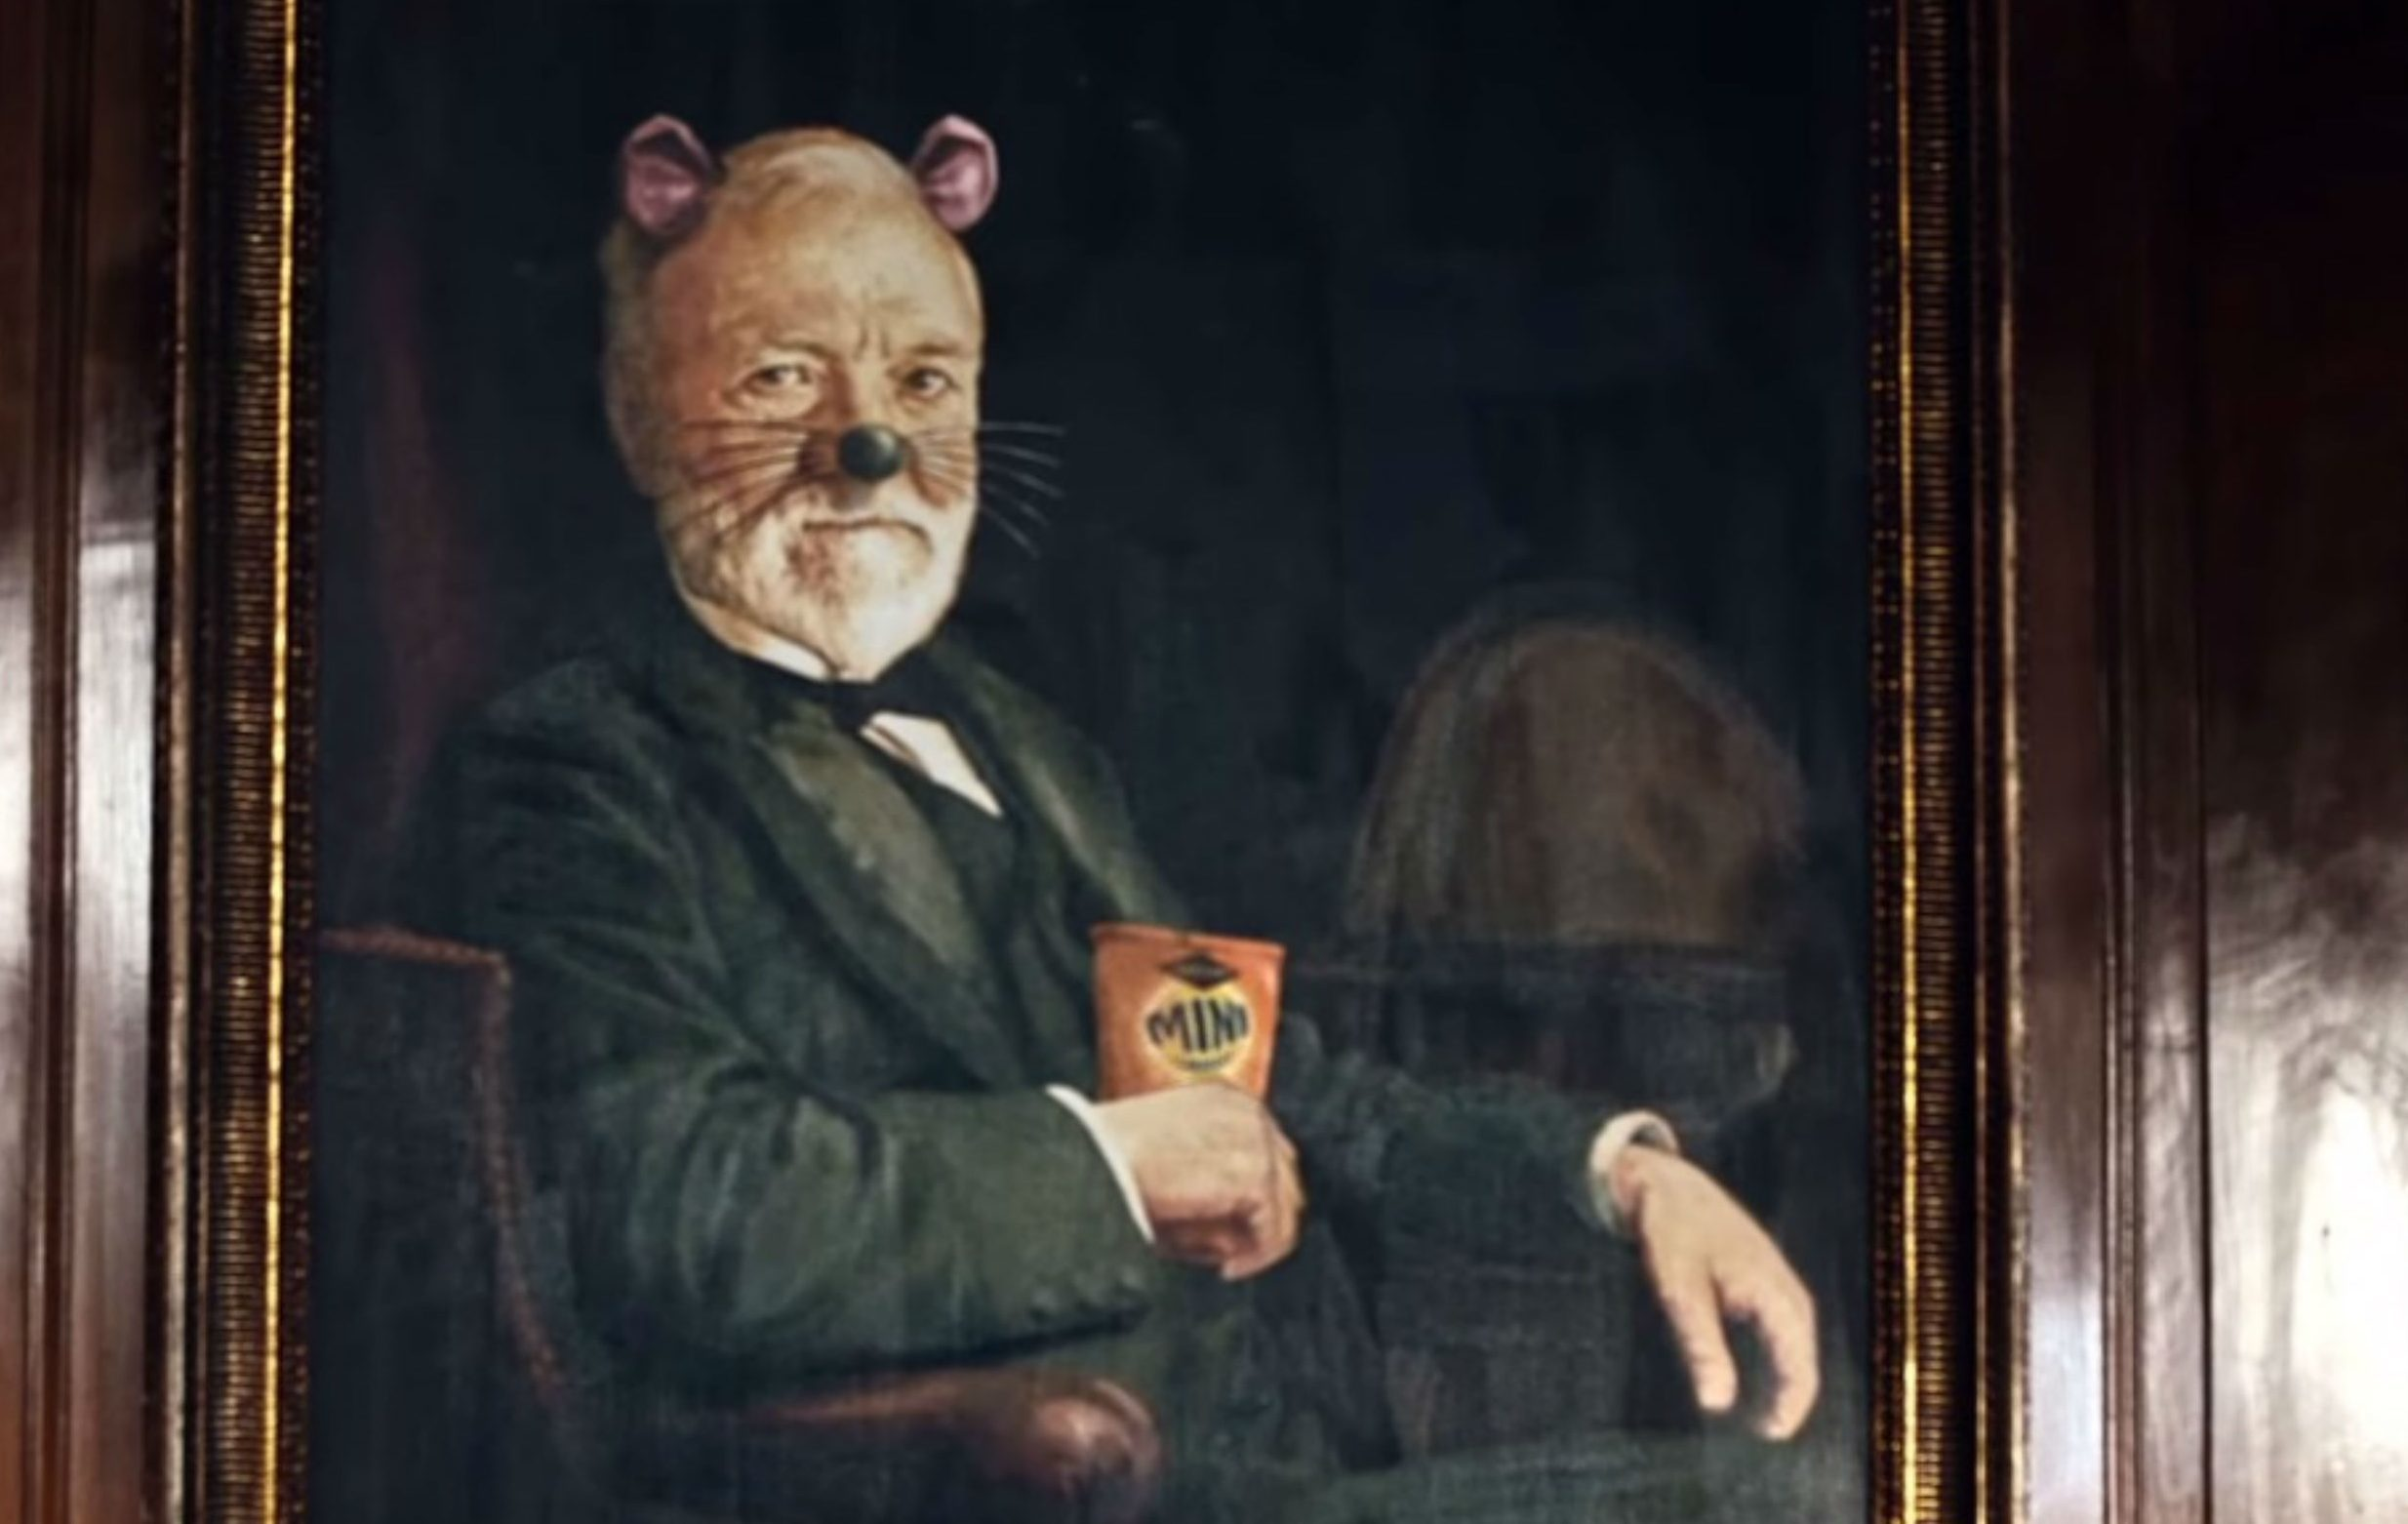 A historical expert has blasted the use of one of Scotland's most celebrated philanthropists, Andrew Carnegie, to sell cheesy biscuits.